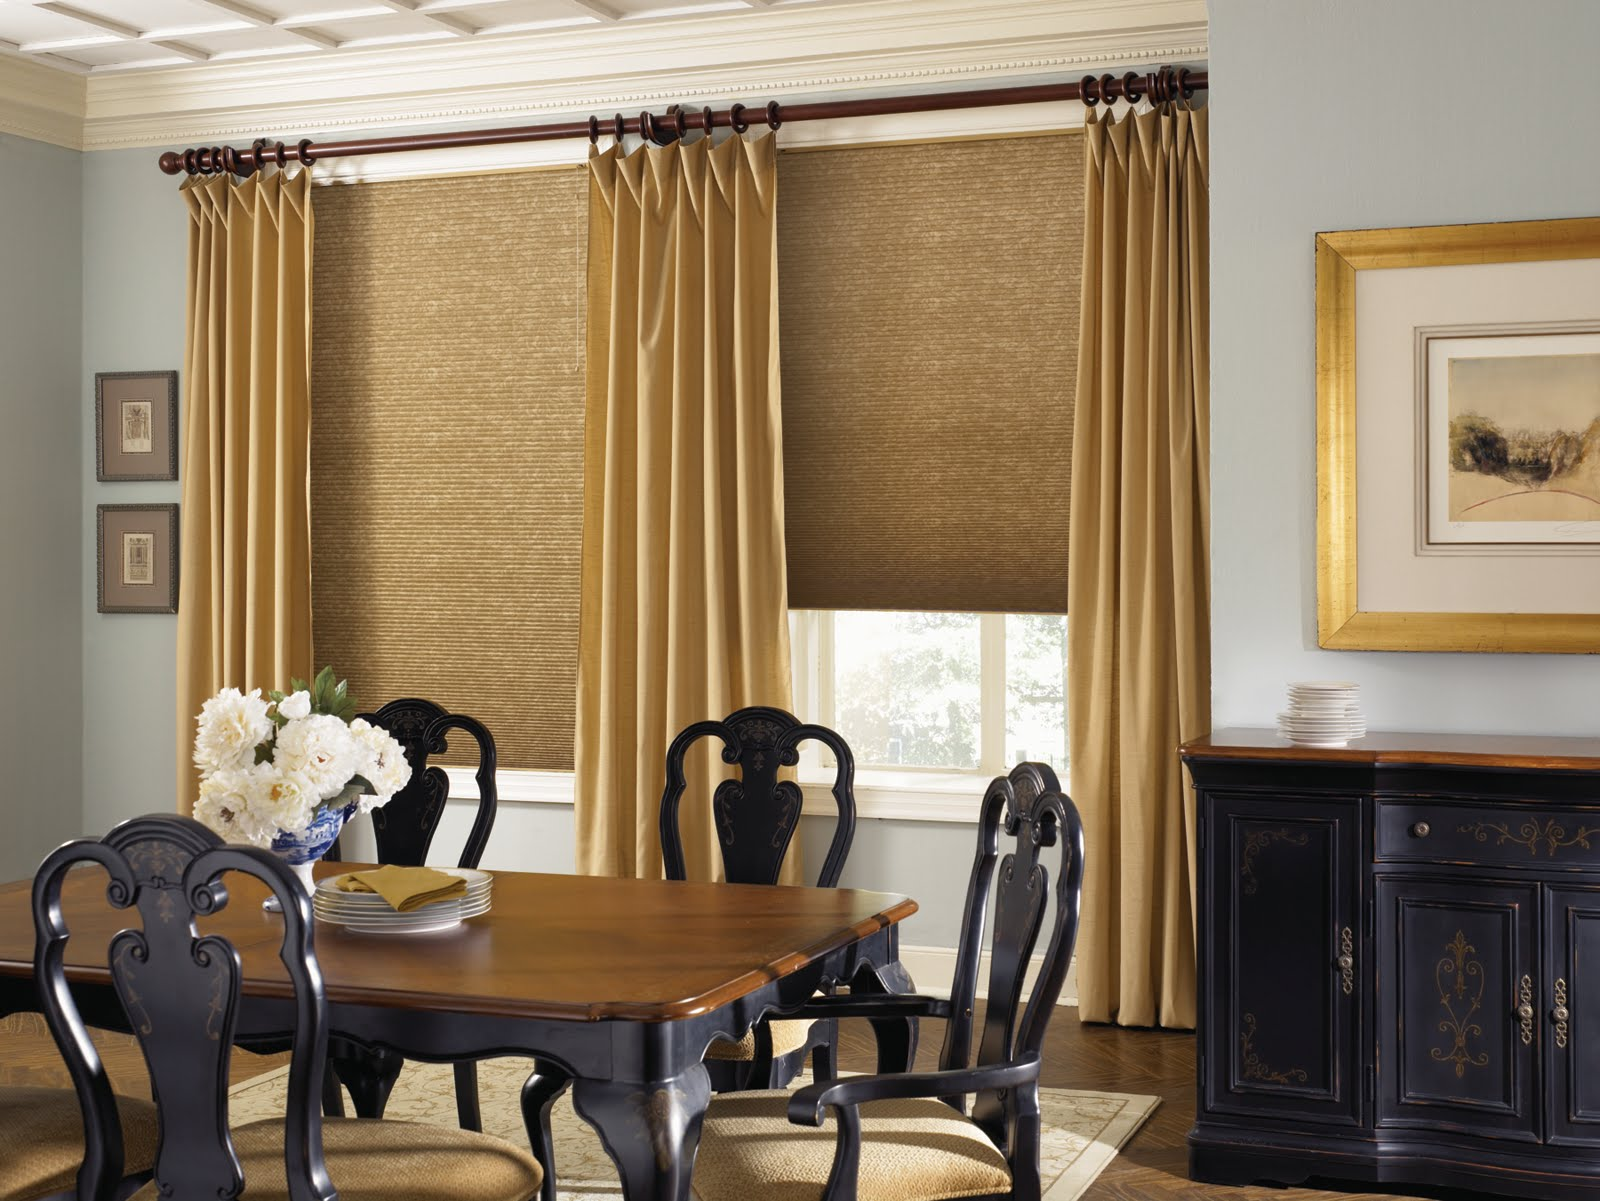 Top window treatment ideas for large windows - Honeycomb Window Shades With Gold Accent Curtains Classic Black Wood Dining Chairs With Large Wood